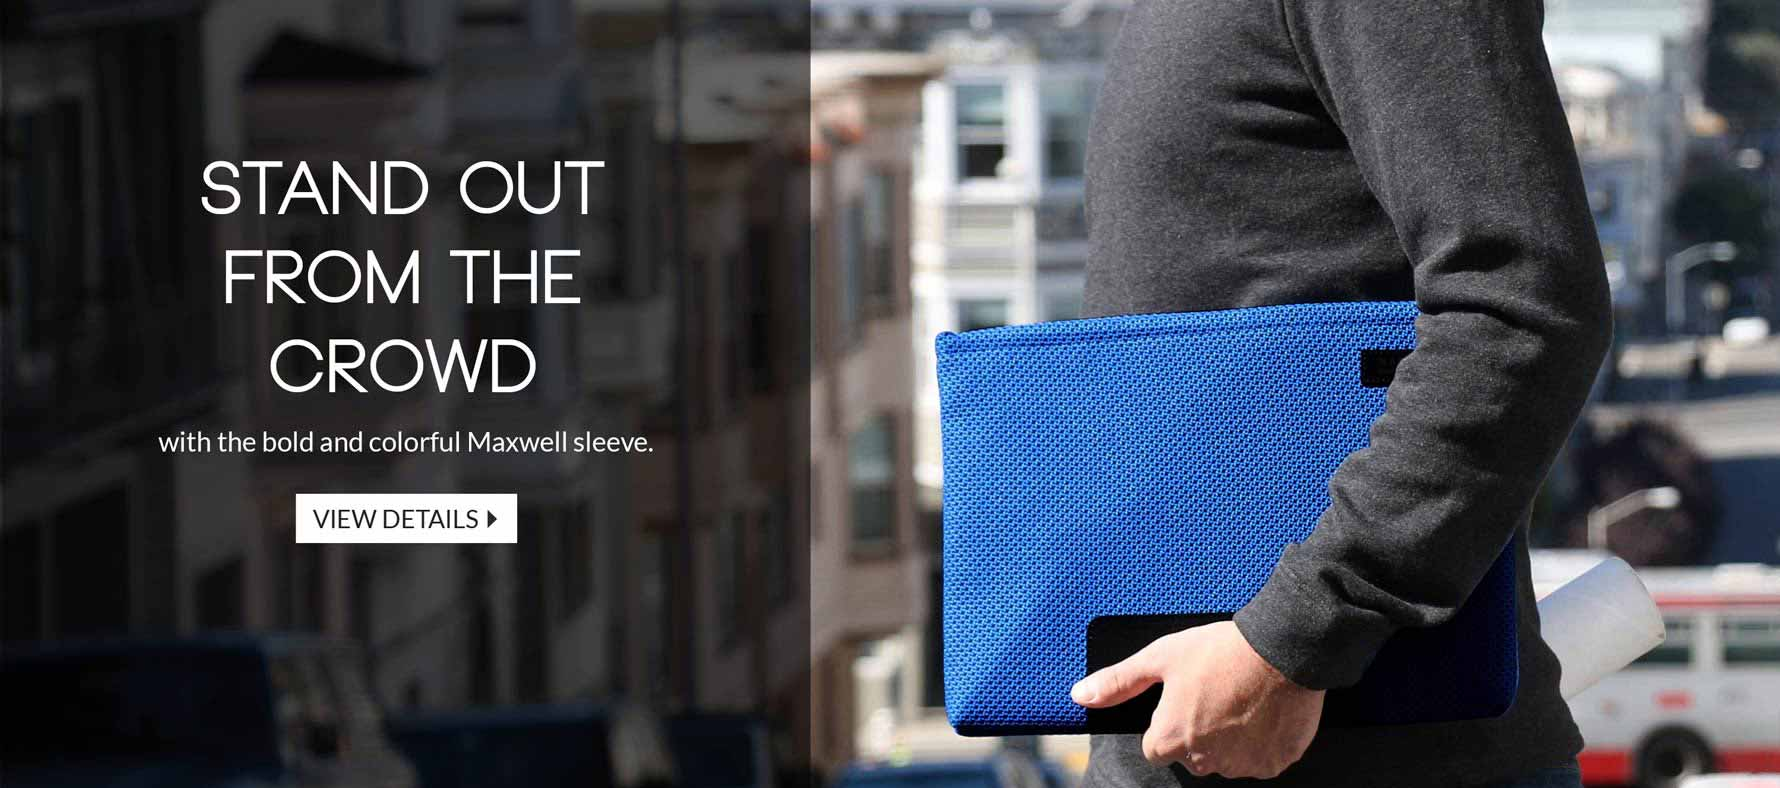 Stand Out from the Crowd with the Maxwell MacBook Sleeve